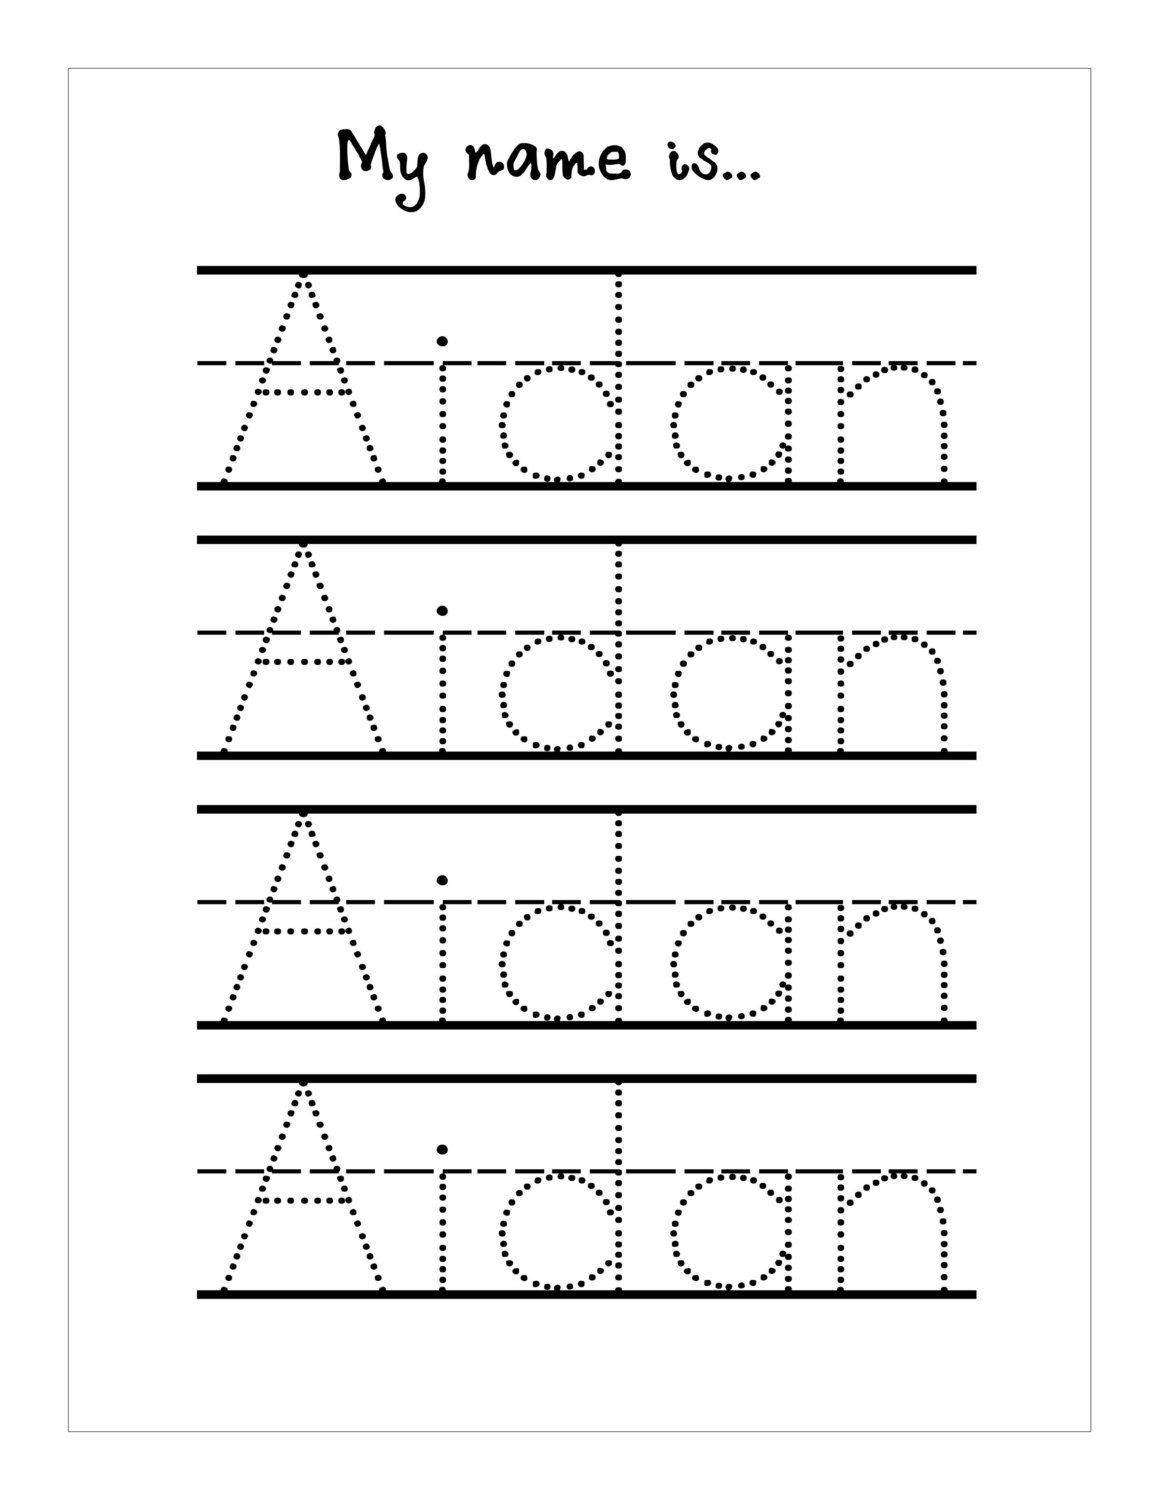 Trace Your Name Worksheet Printable Kiddo Shelter | Best Worksheet - Free Printable Name Tracing Worksheets